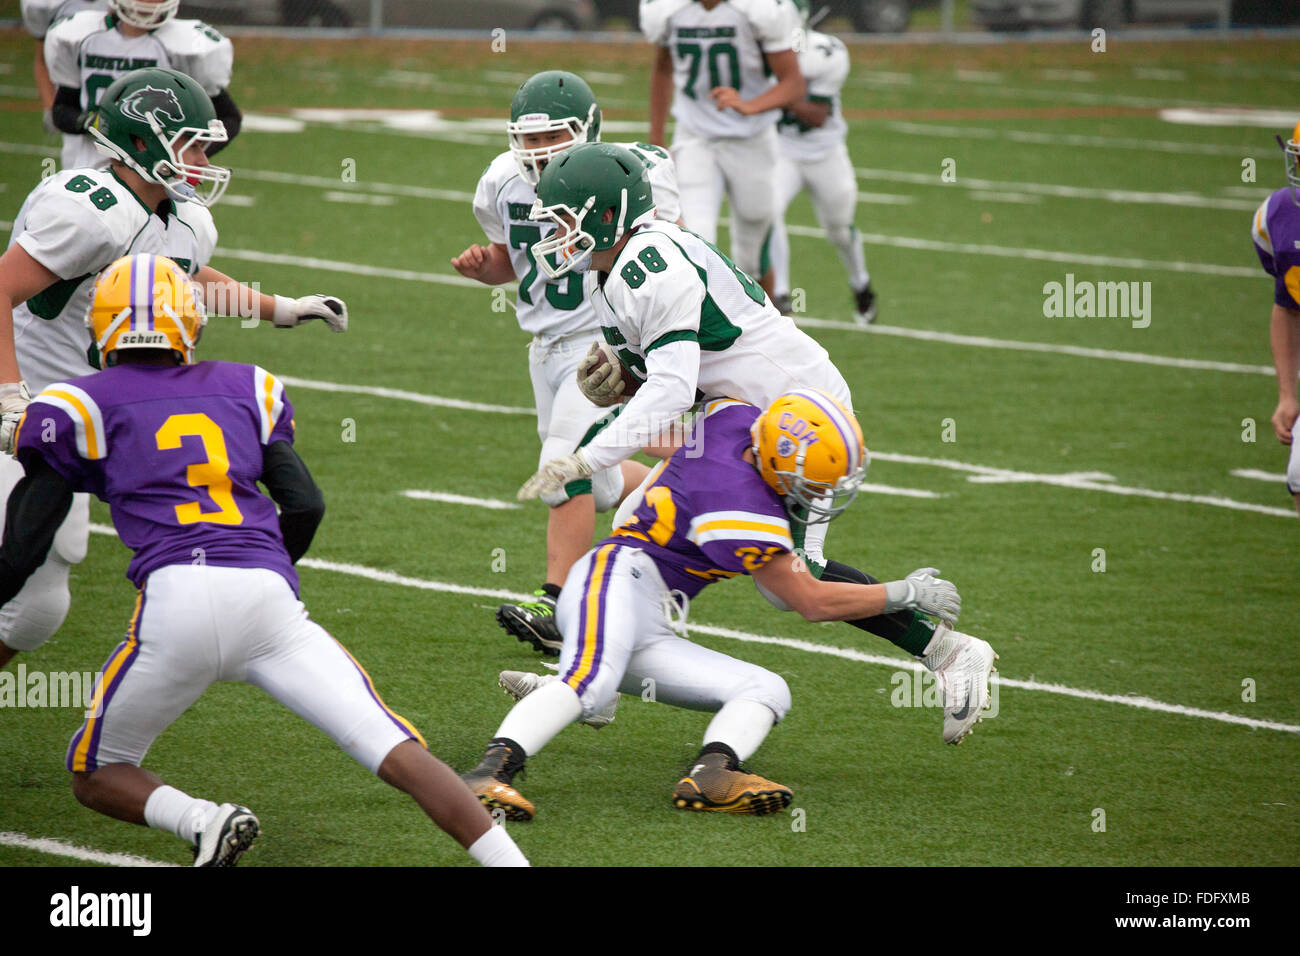 Mounds View High School football player being tackled by Cretin-Derham Hall in a Jr Varsity game. St Paul Minnesota - Stock Image